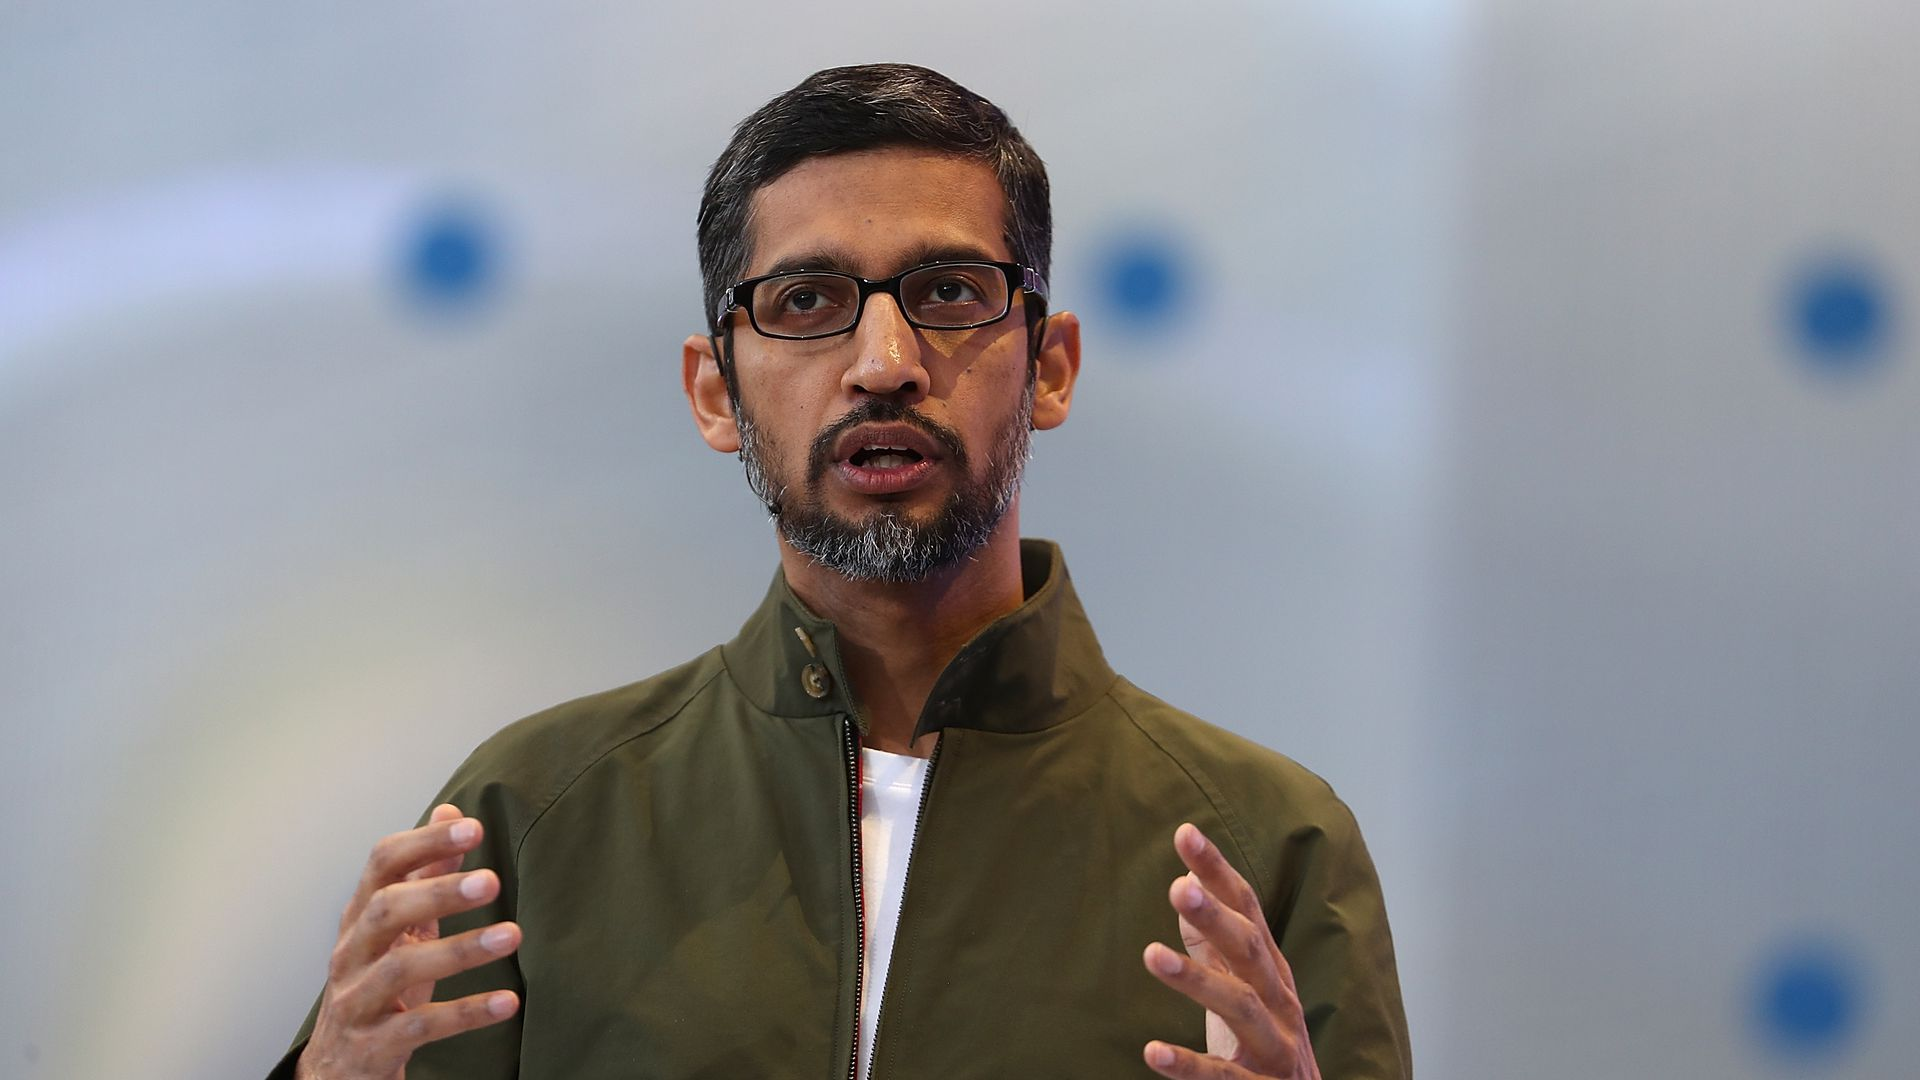 Google CEO discusses China search engine for the first time